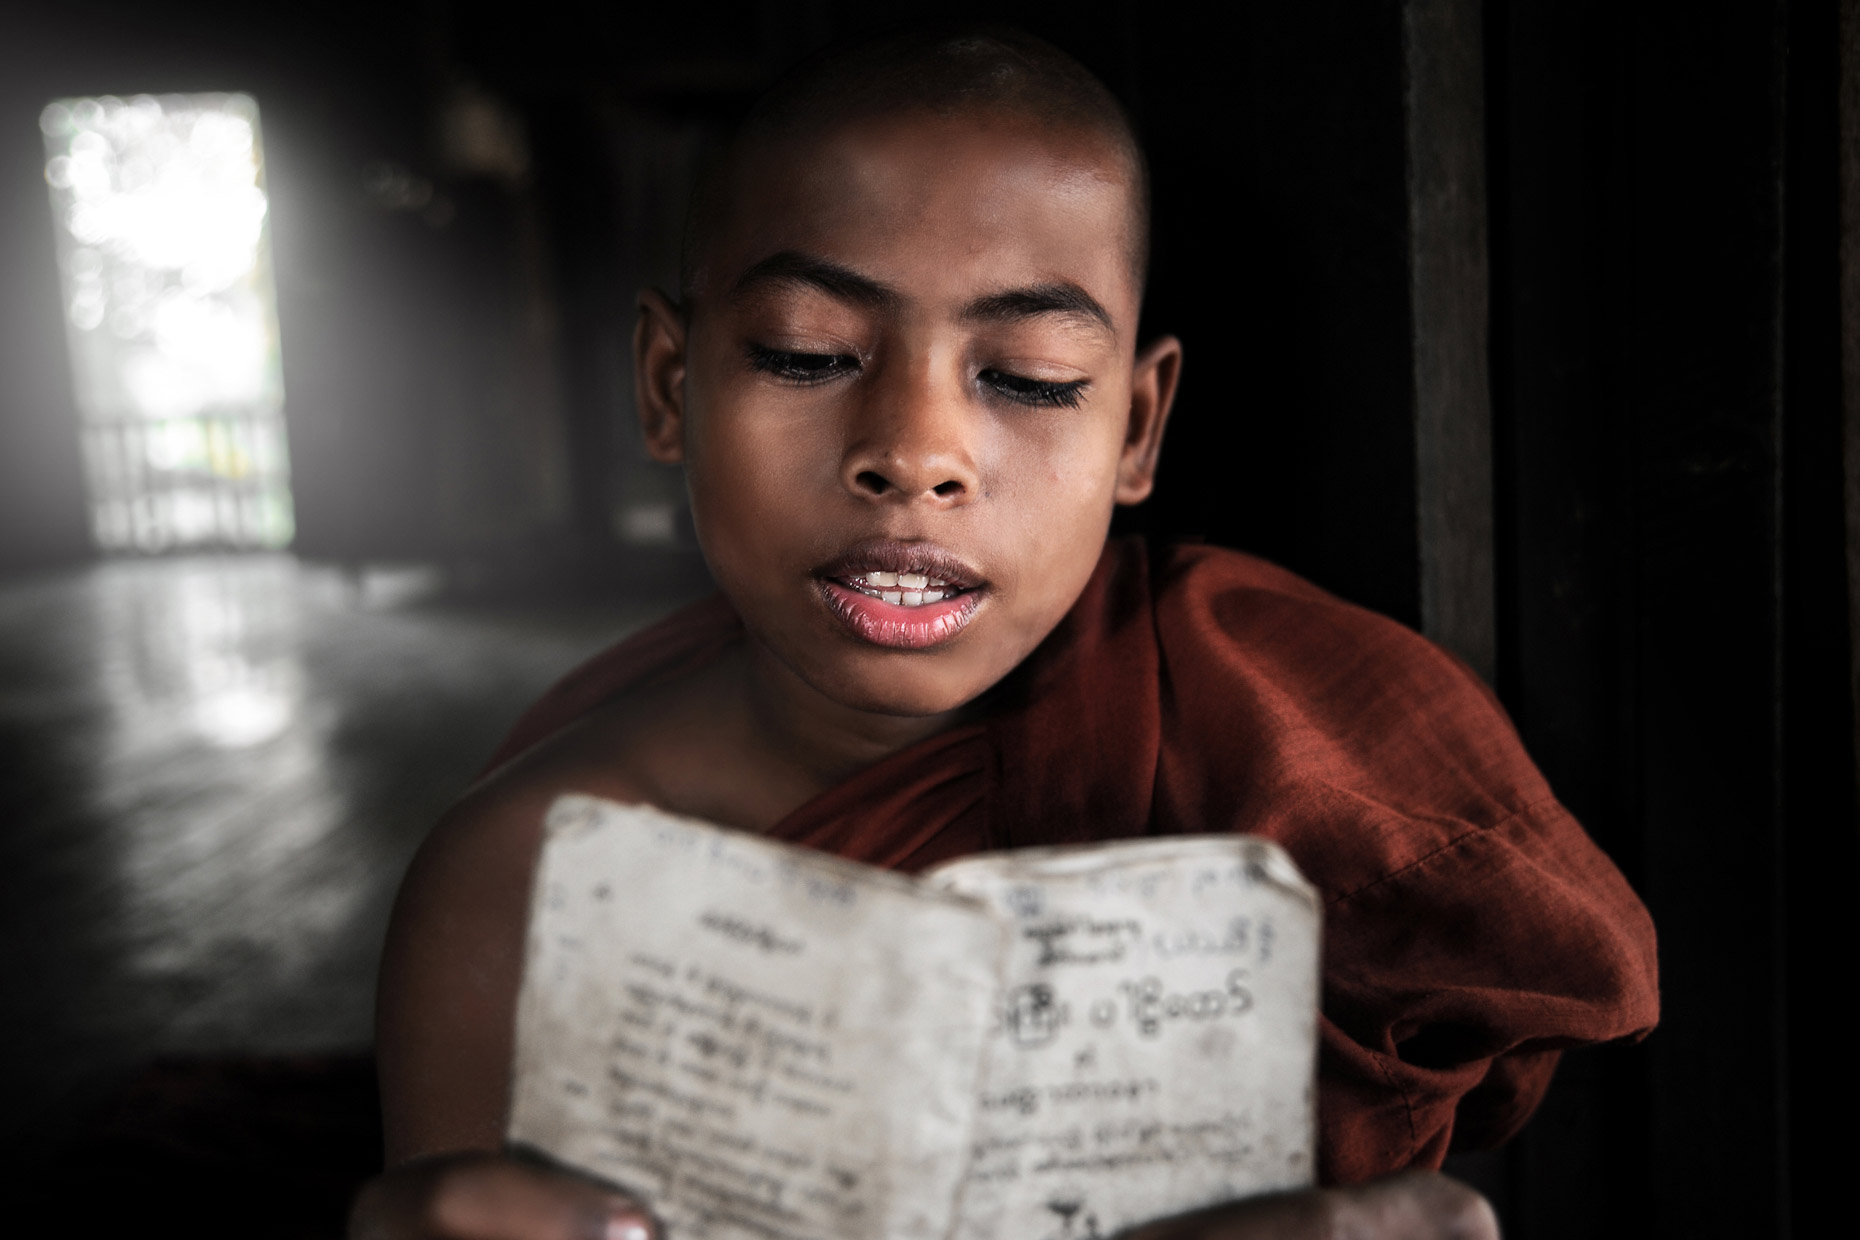 Burma monk 16 Prayer-Time.jpg